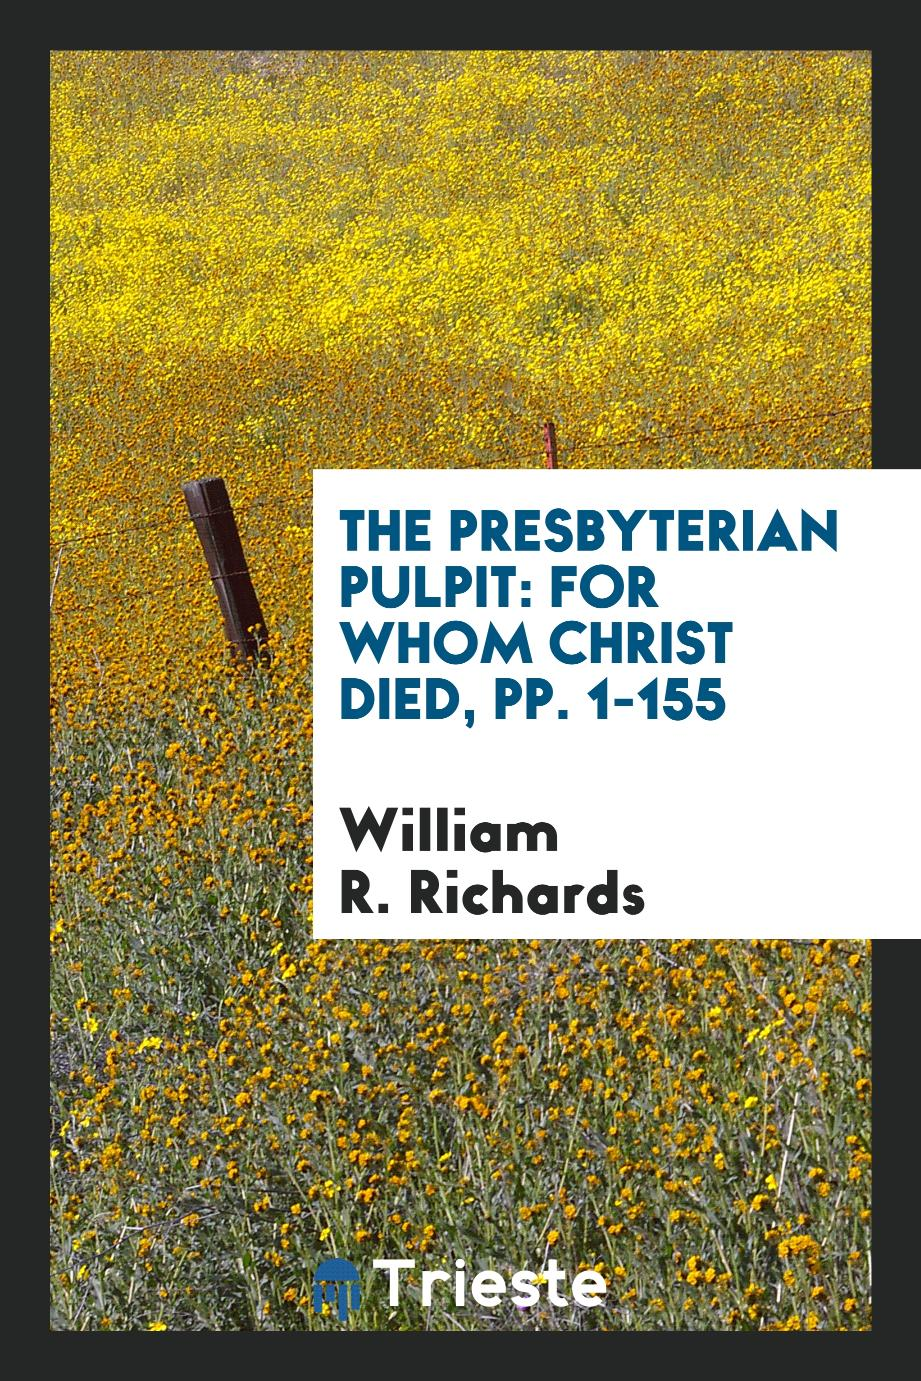 The Presbyterian Pulpit: For Whom Christ Died, pp. 1-155